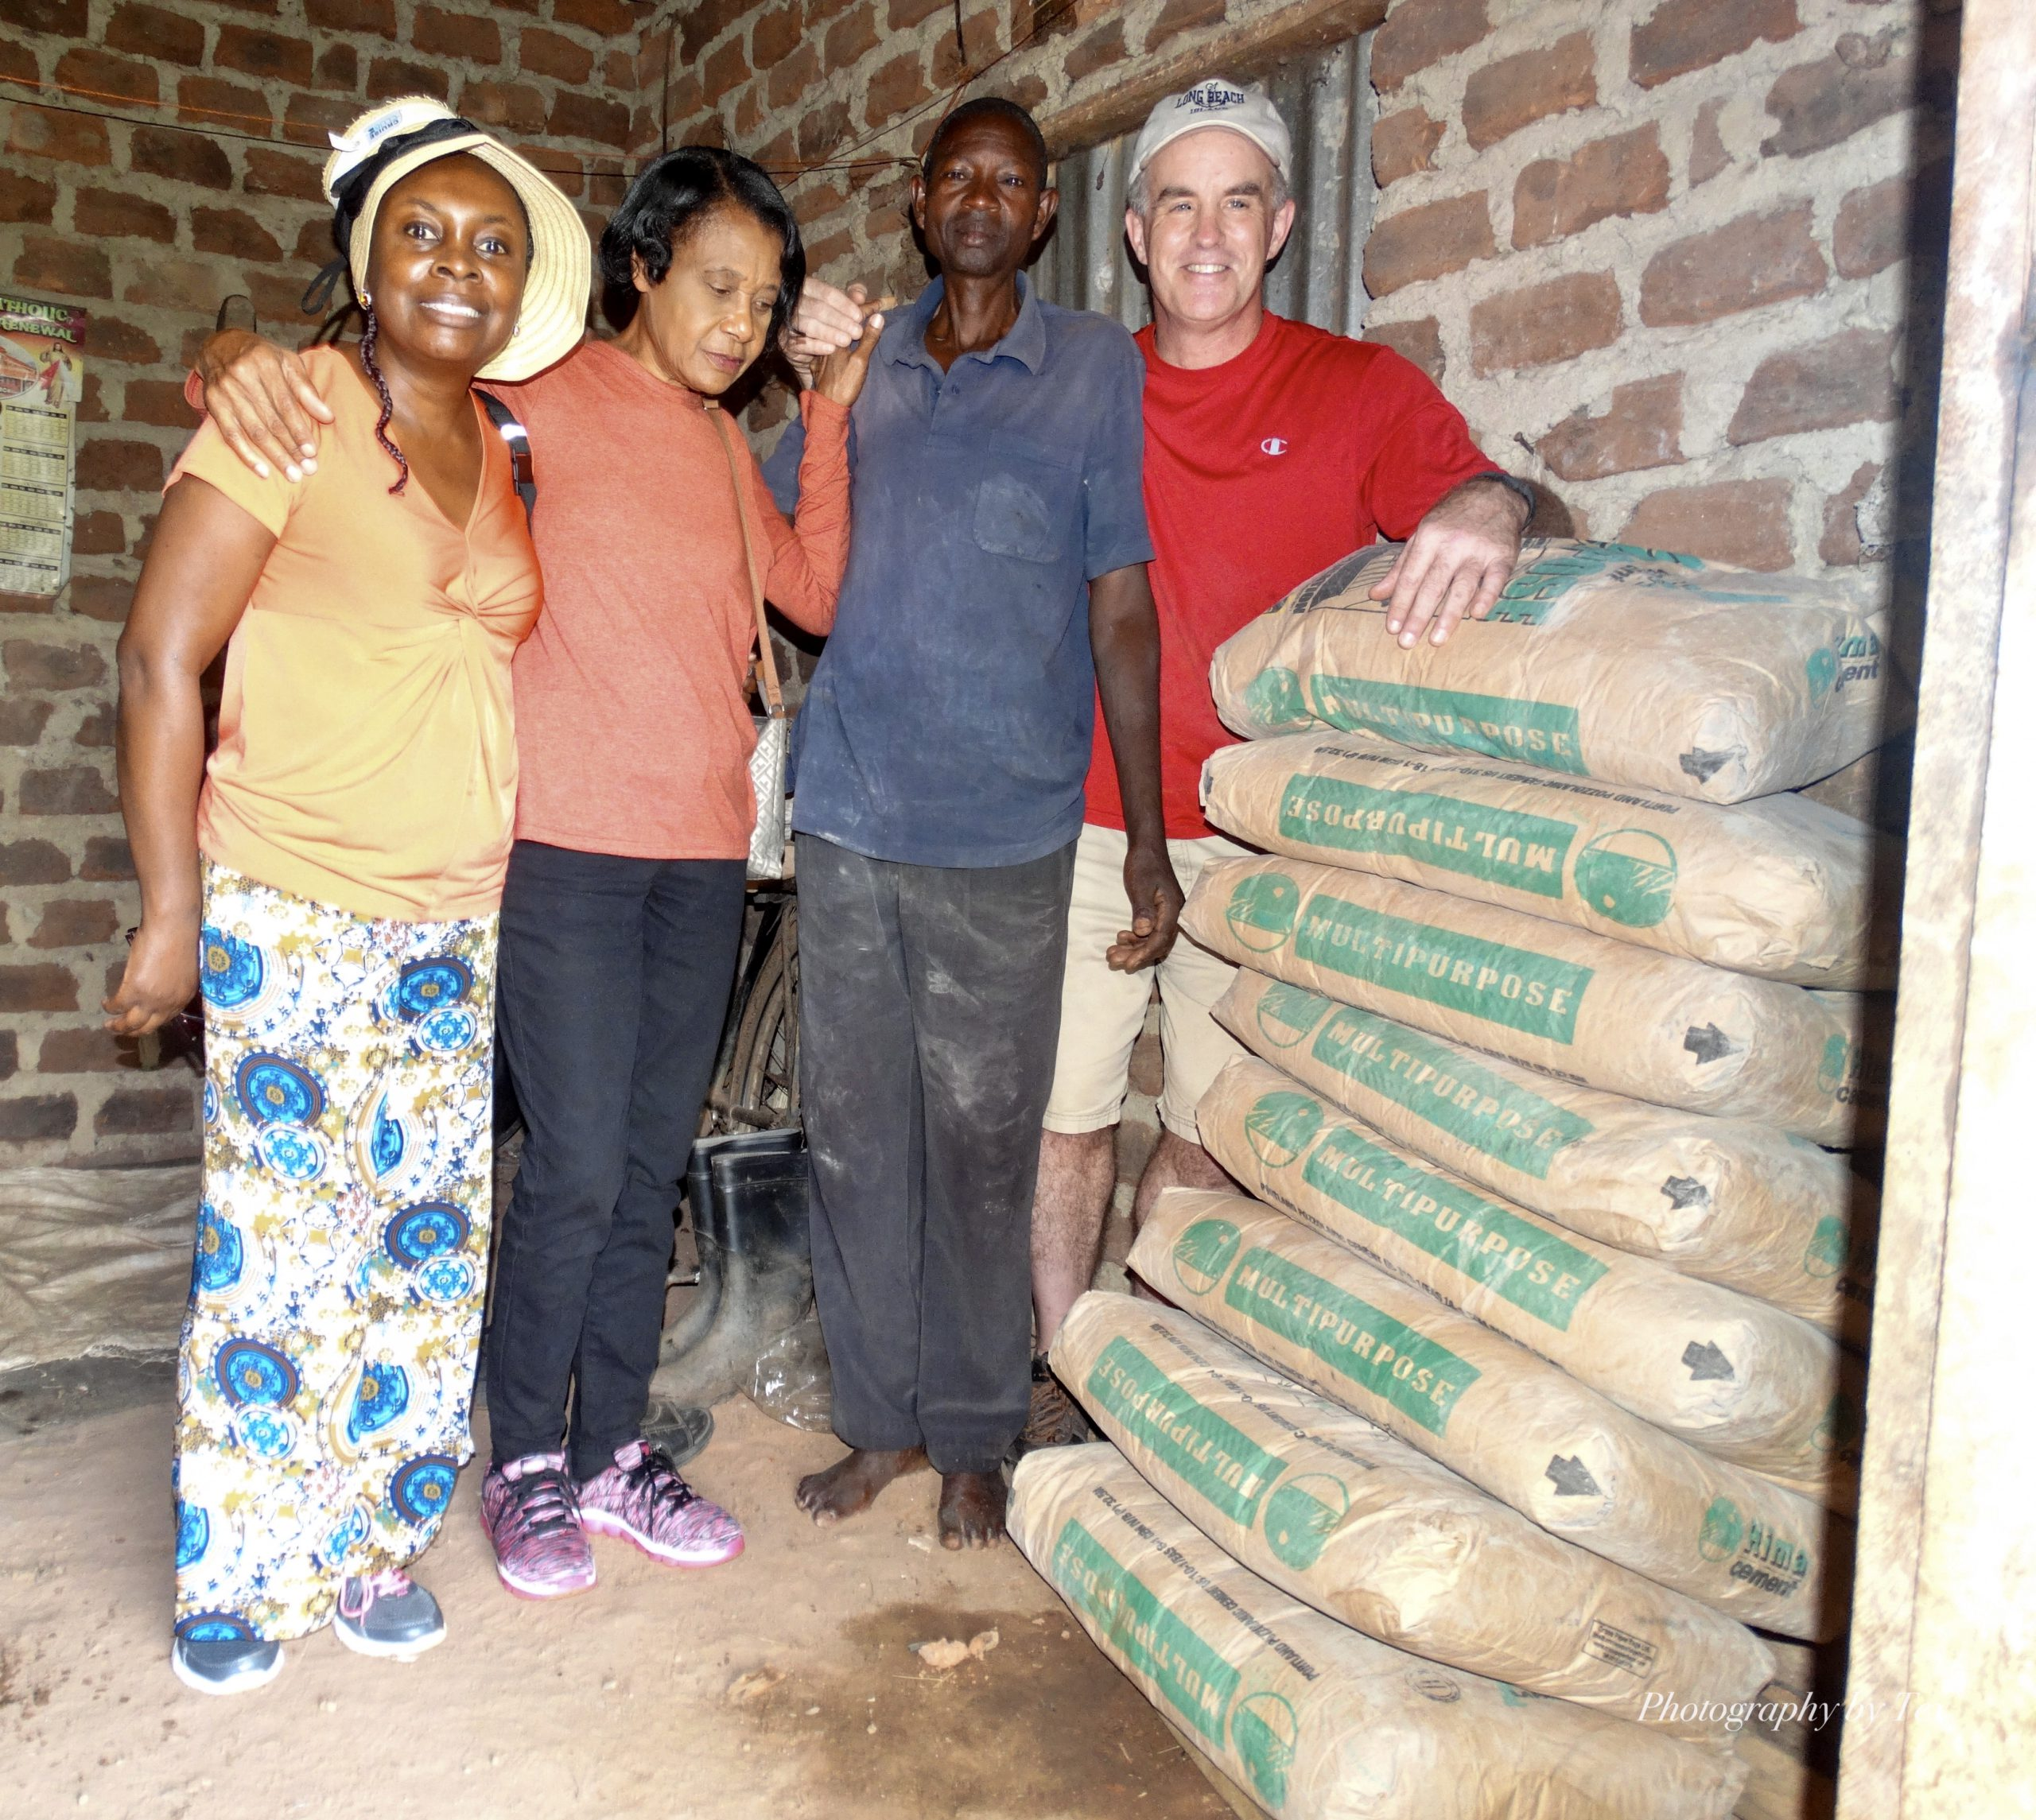 Teina, Celia, Paul Kayonga and Tim dropped off cement for the floors of the Kayonga's home